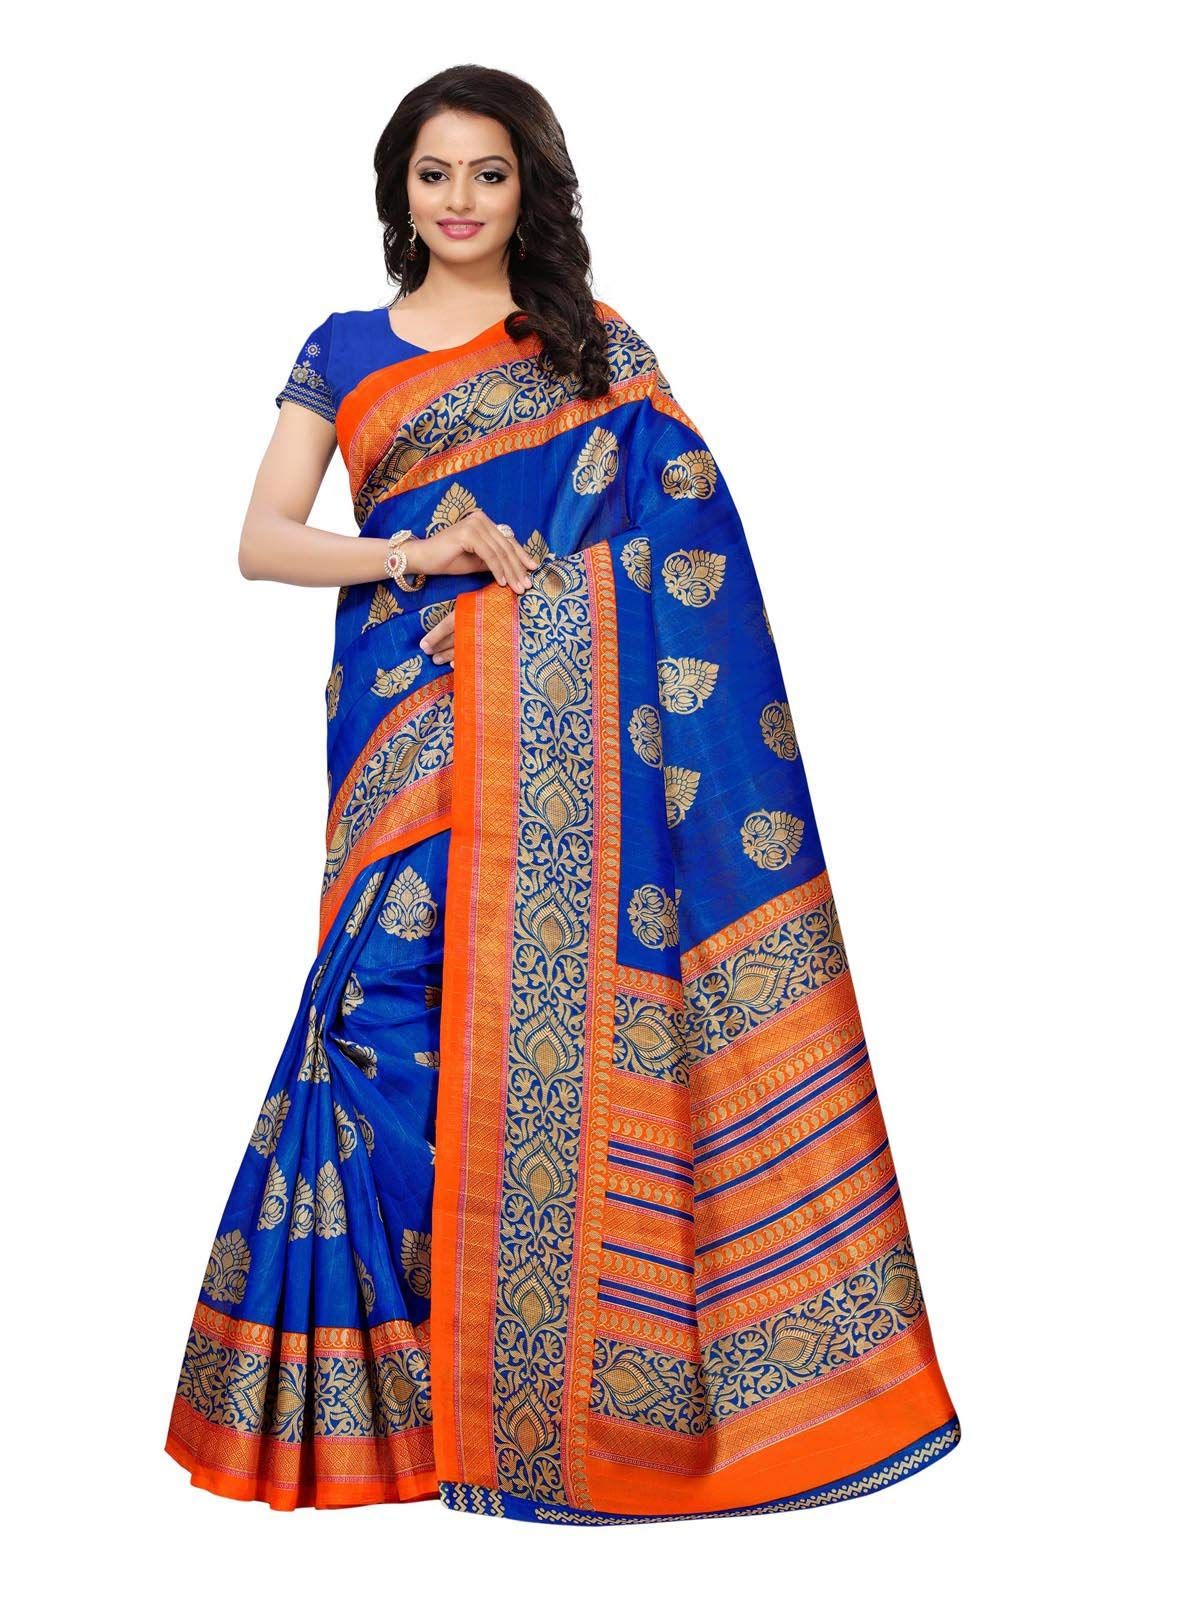 Kanchnar Women's Poly Silk Printed Ethnic Wear Saree